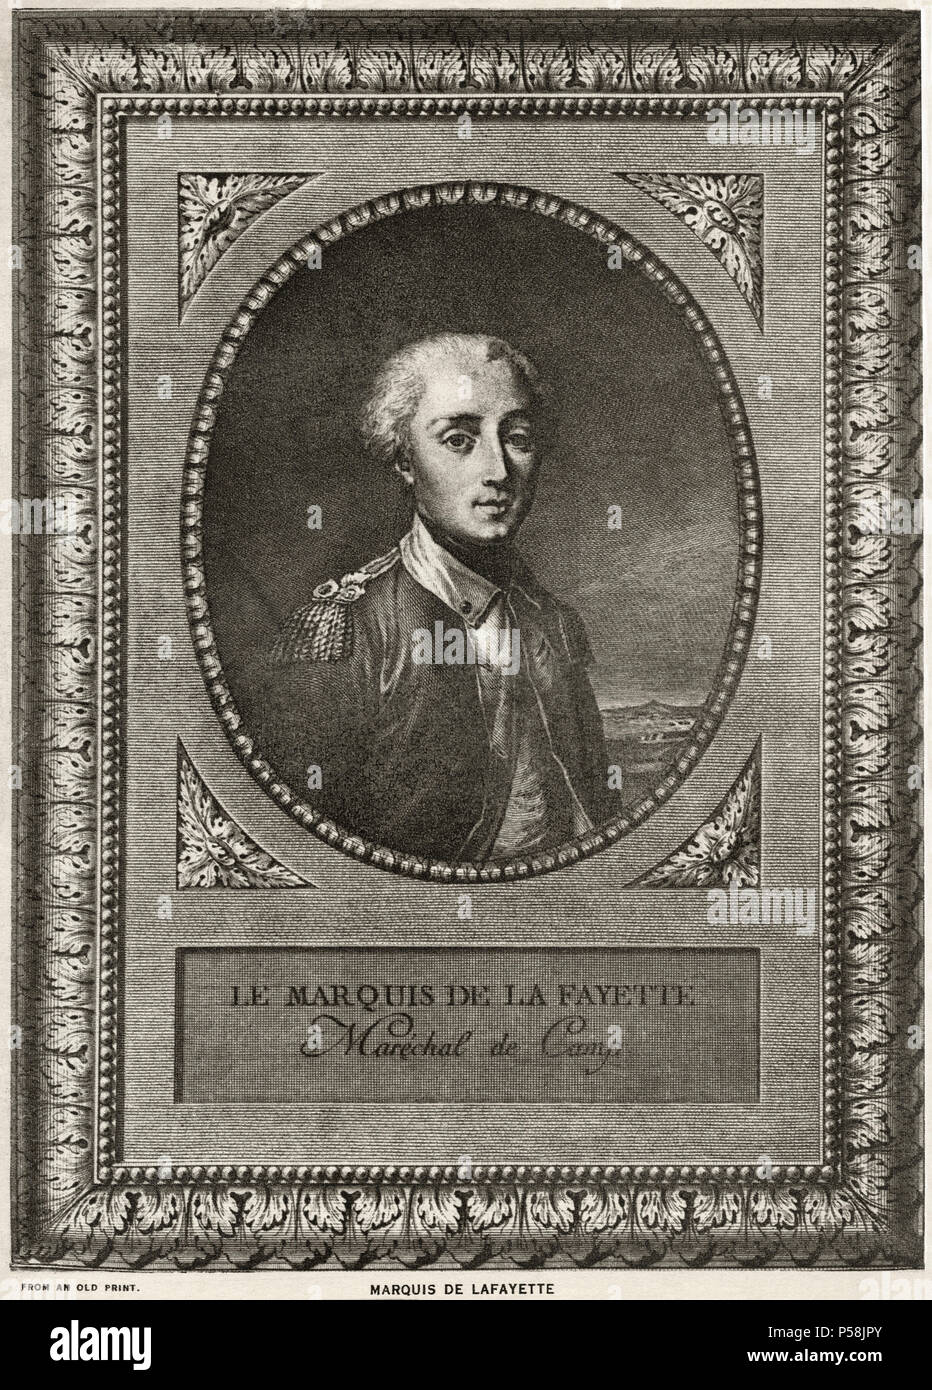 Marquis de Lafayette (1757-1834), French Aristocrat and Miliary Officer, Fought in American Revolutionary War, Portrait Stock Photo